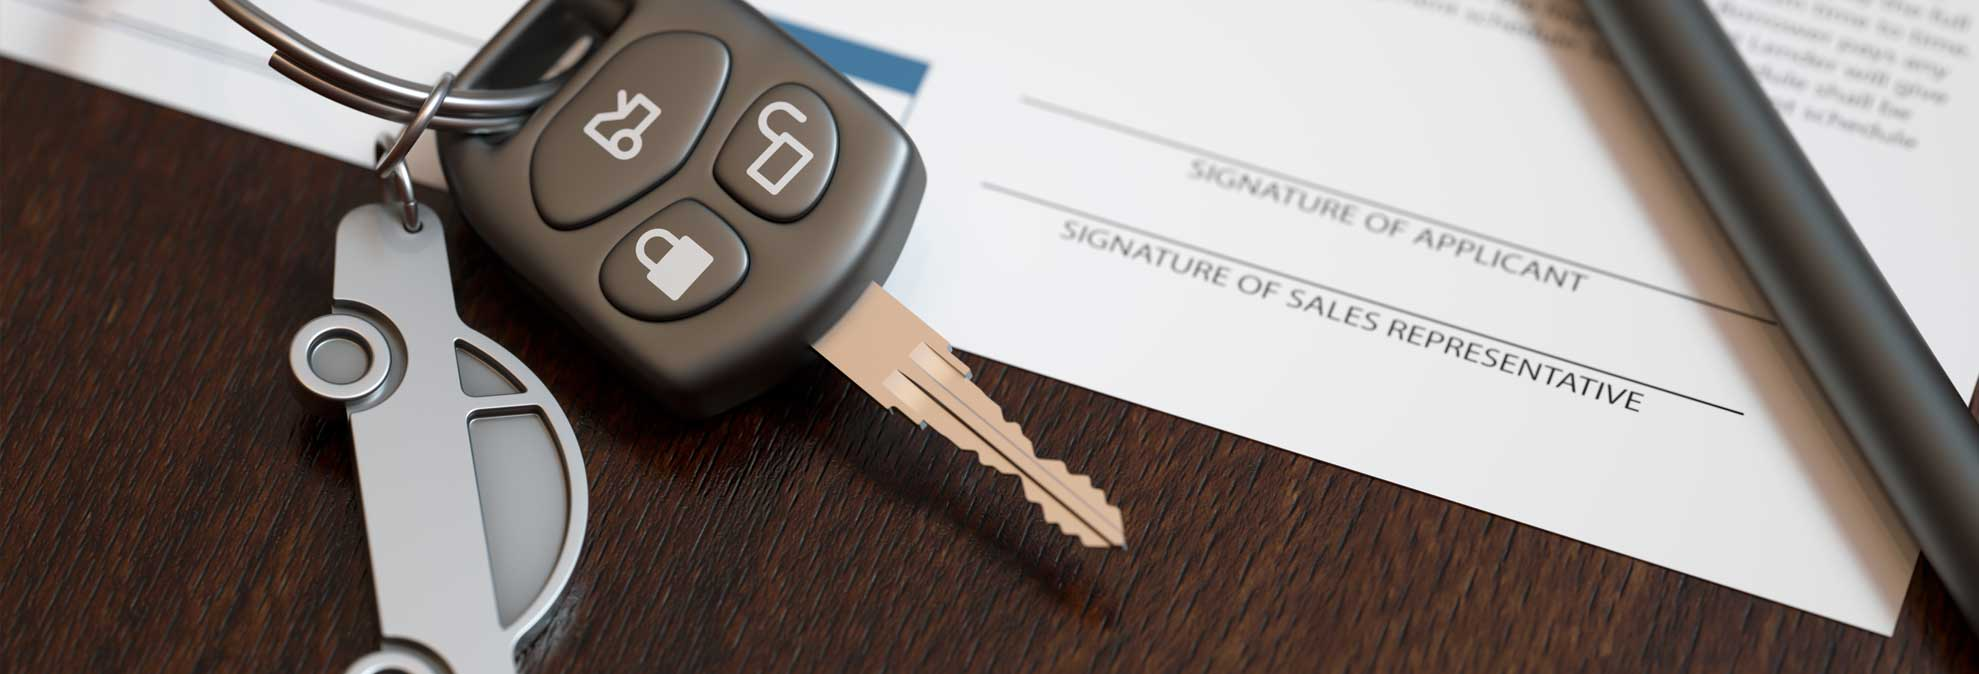 Ripoff report bmw financial services complaint review hilliard ohio - Ripoff Report Bmw Financial Services Complaint Review Hilliard Ohio 30